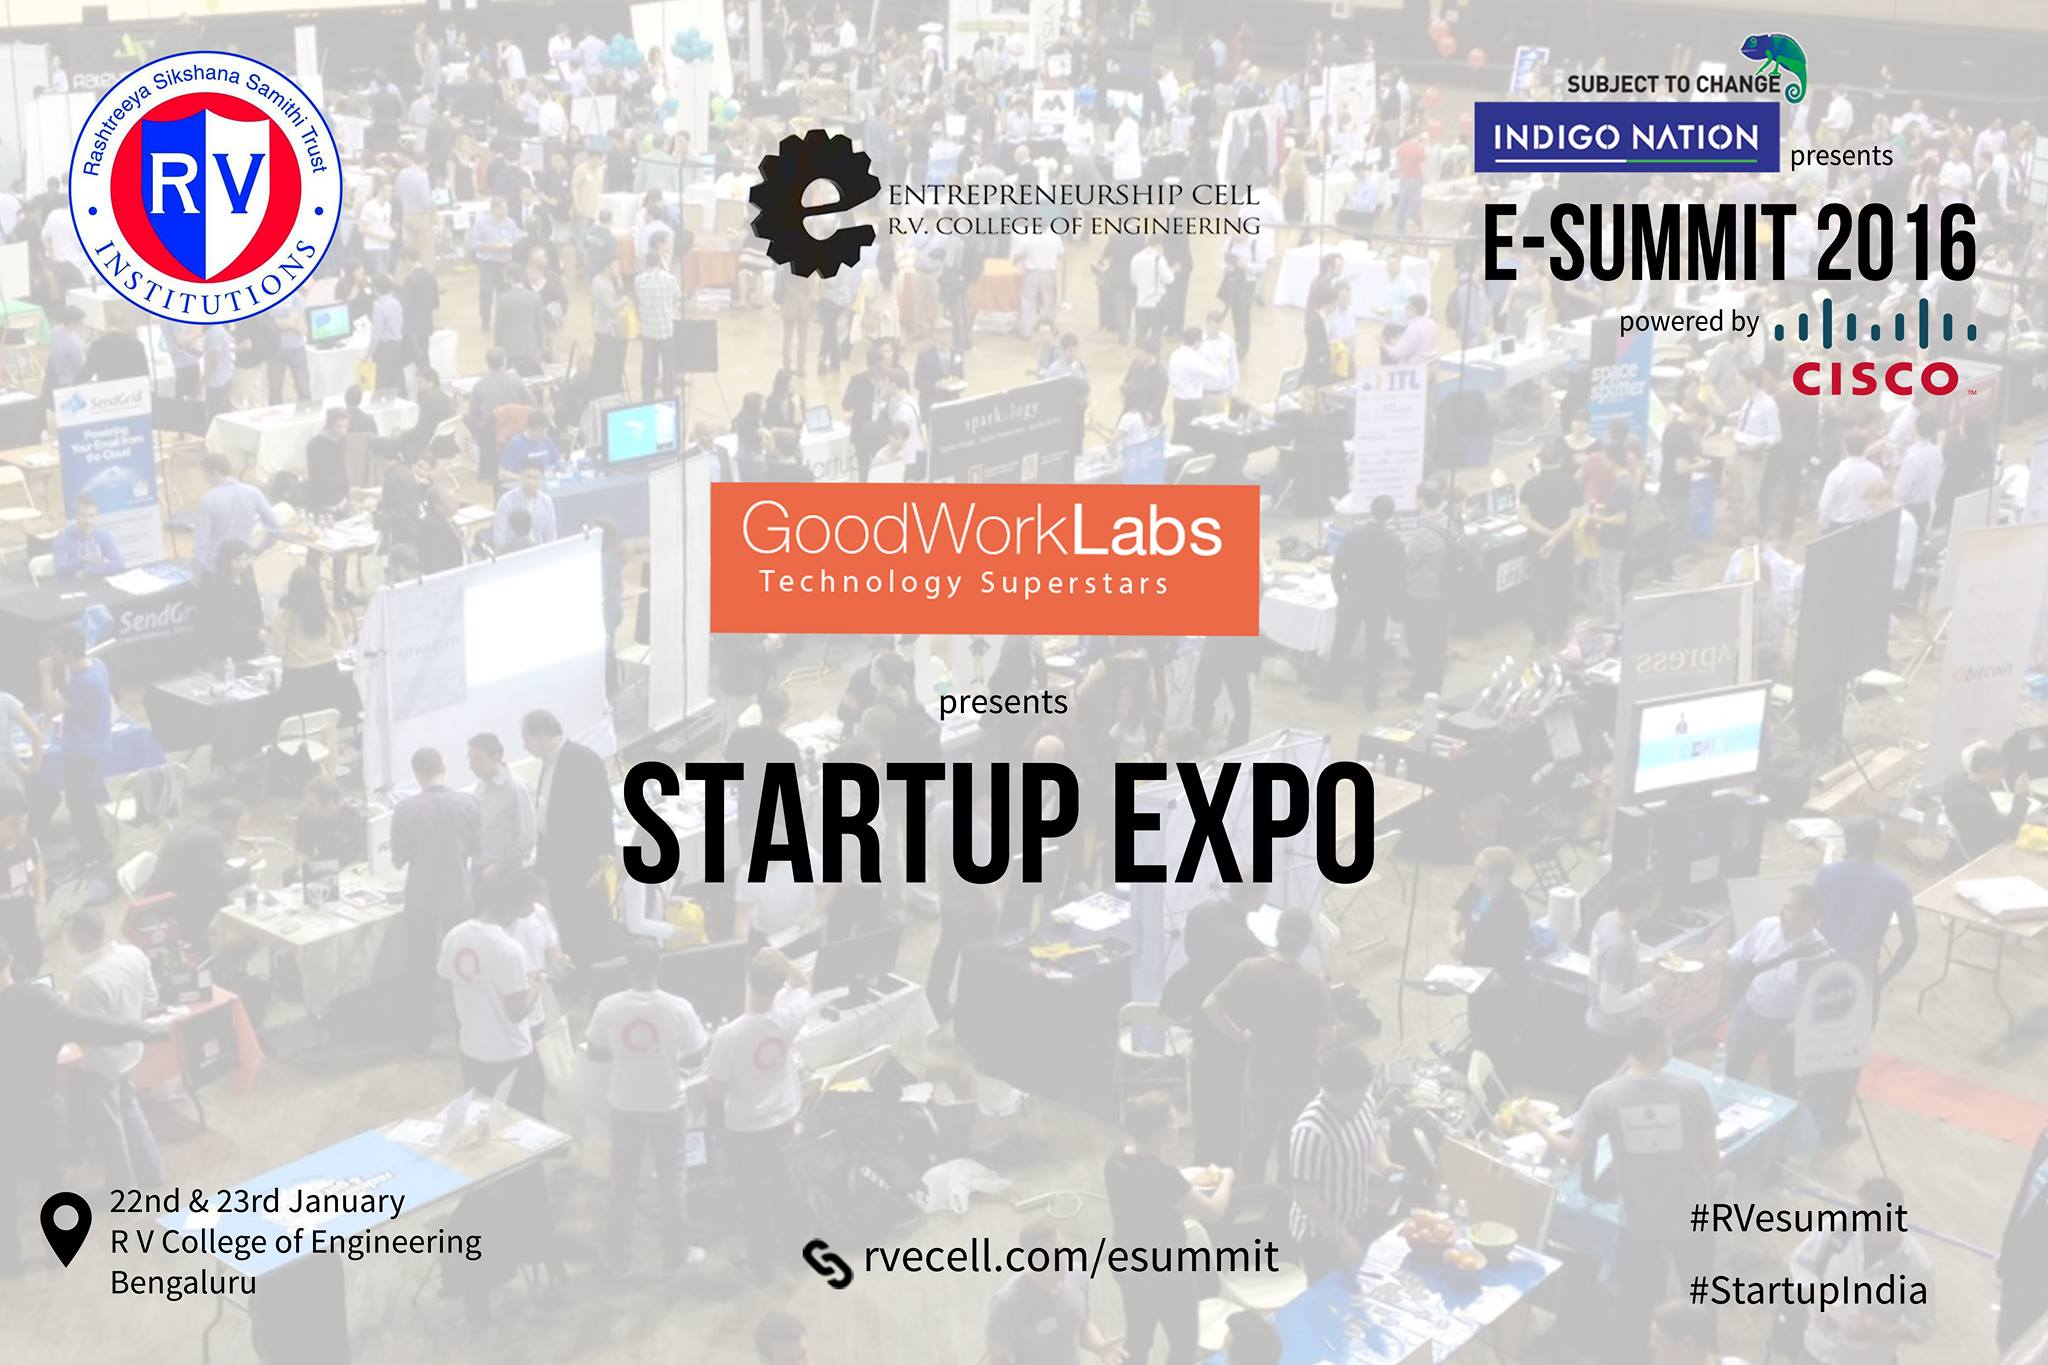 goodworklabs-title-sponsor-startup-expo-rvce-2016